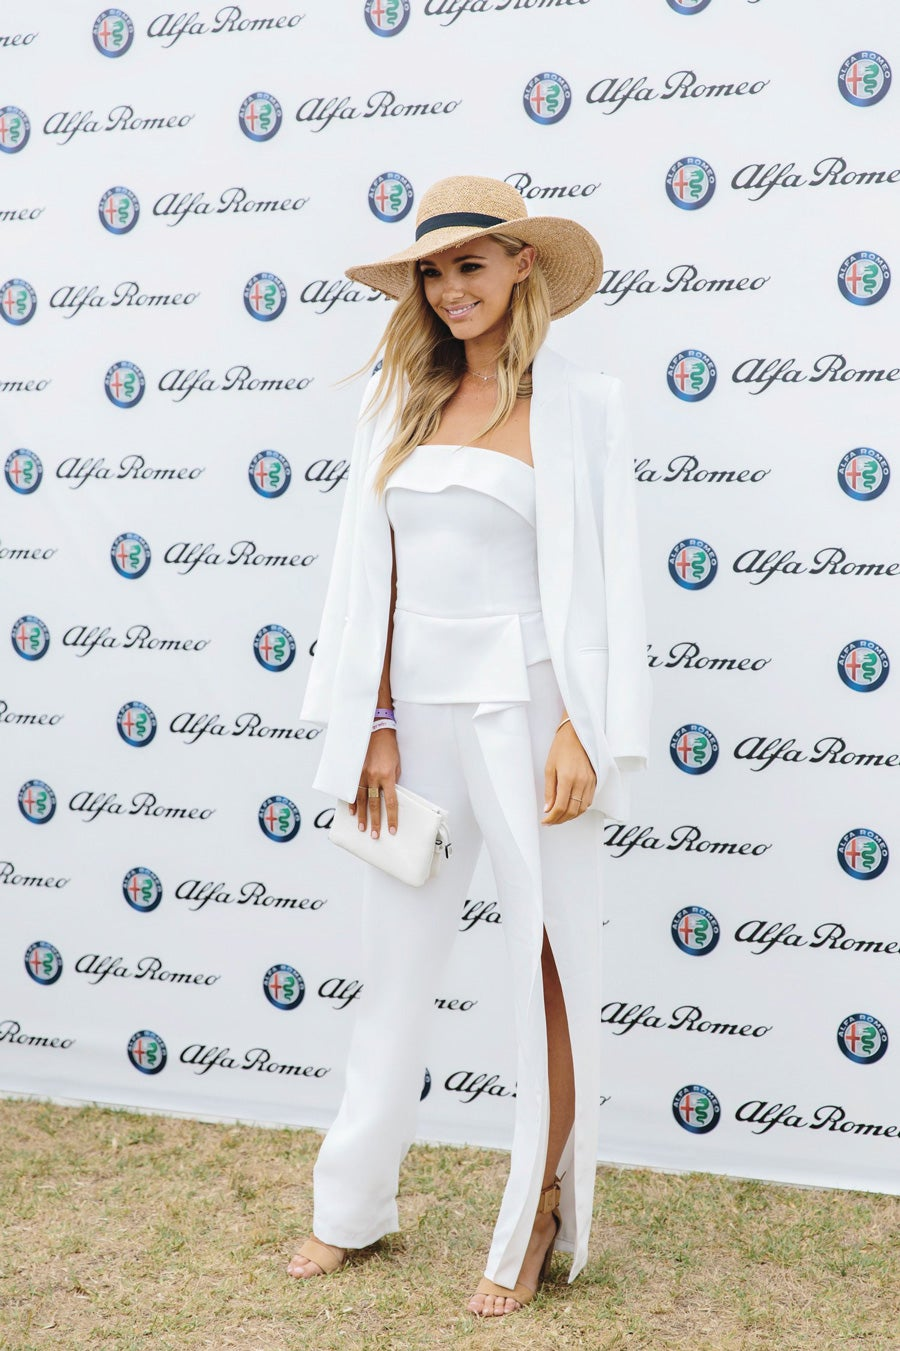 Girl in white outfit standing in front of media wall